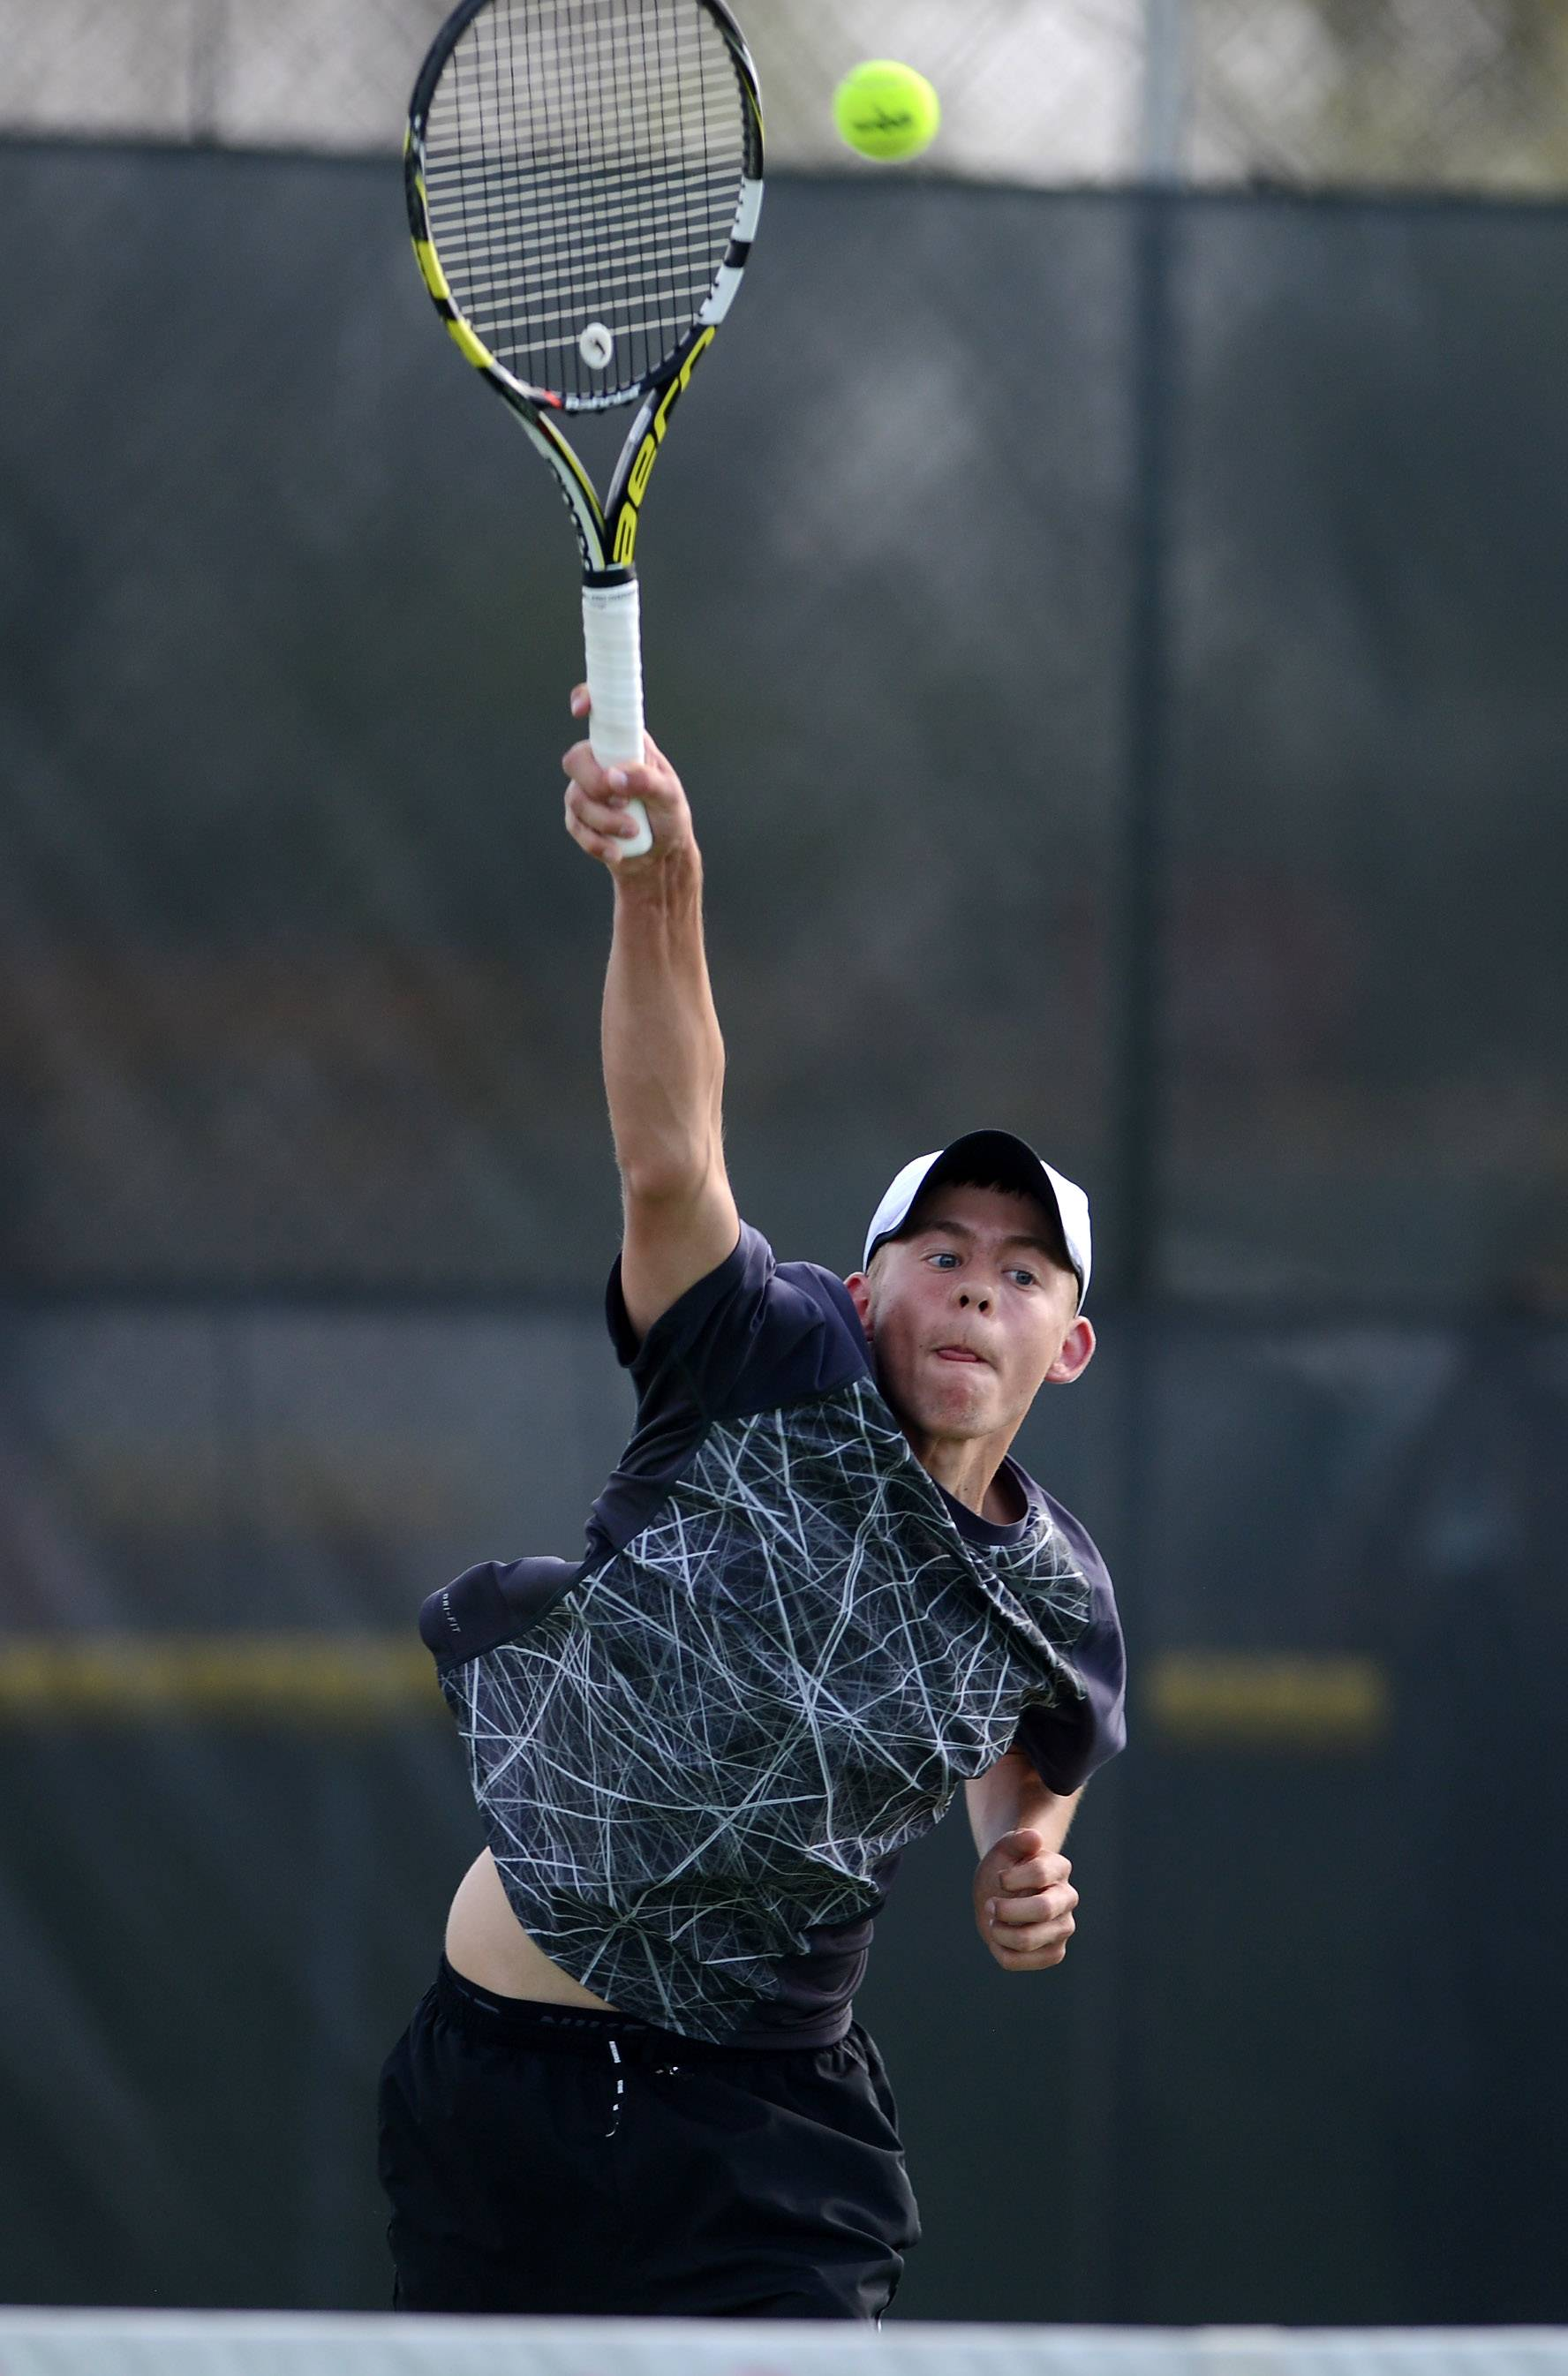 Aaron Amburgey, above, and his partner Grant Spellman won the doubles sectional championship Saturday at St. Charles East, and their win keyed the team sectional title for the North Stars.